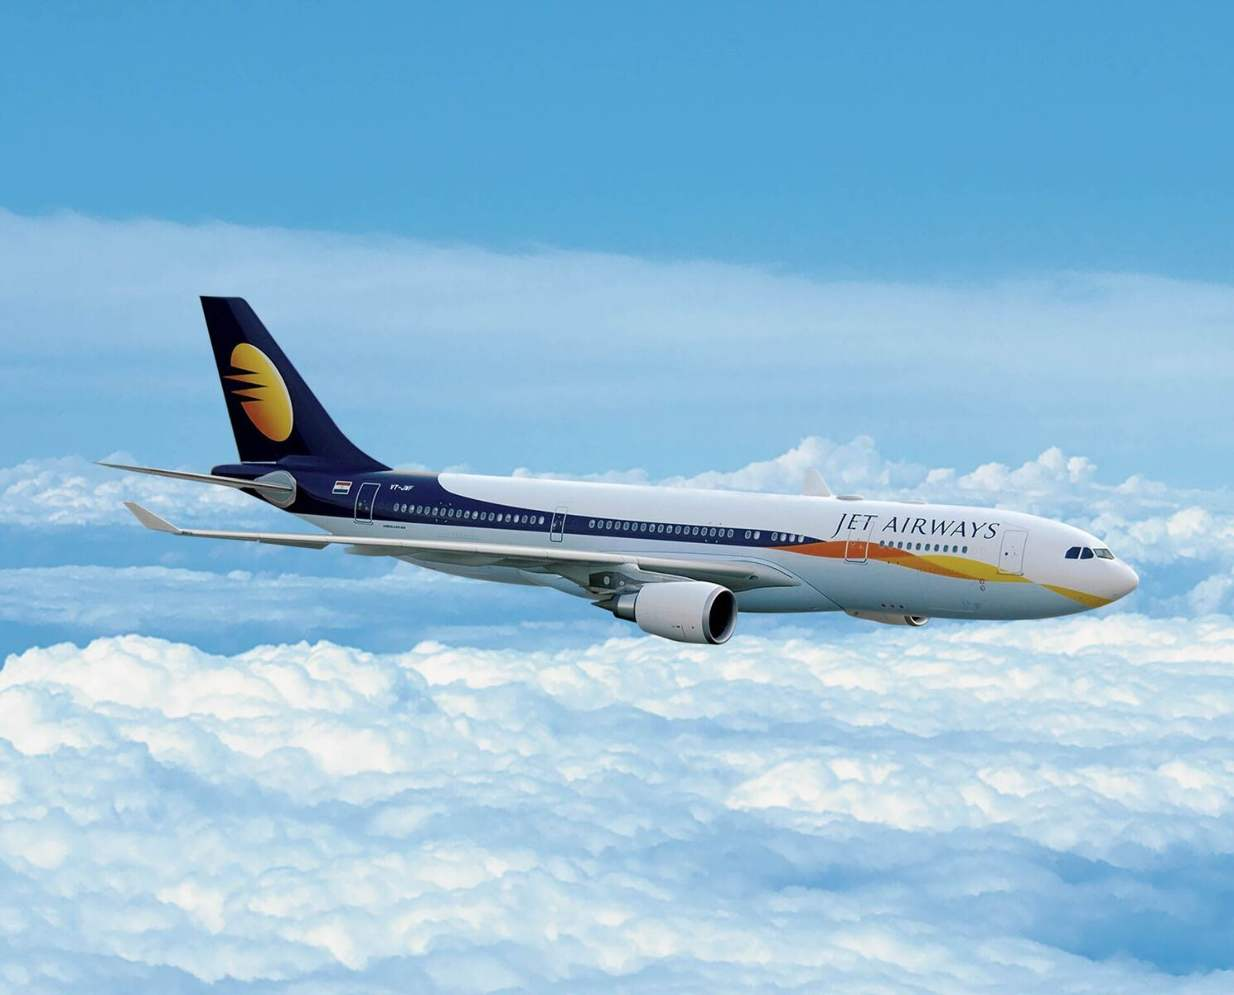 Jet Airways expands services to Europe, Middle East